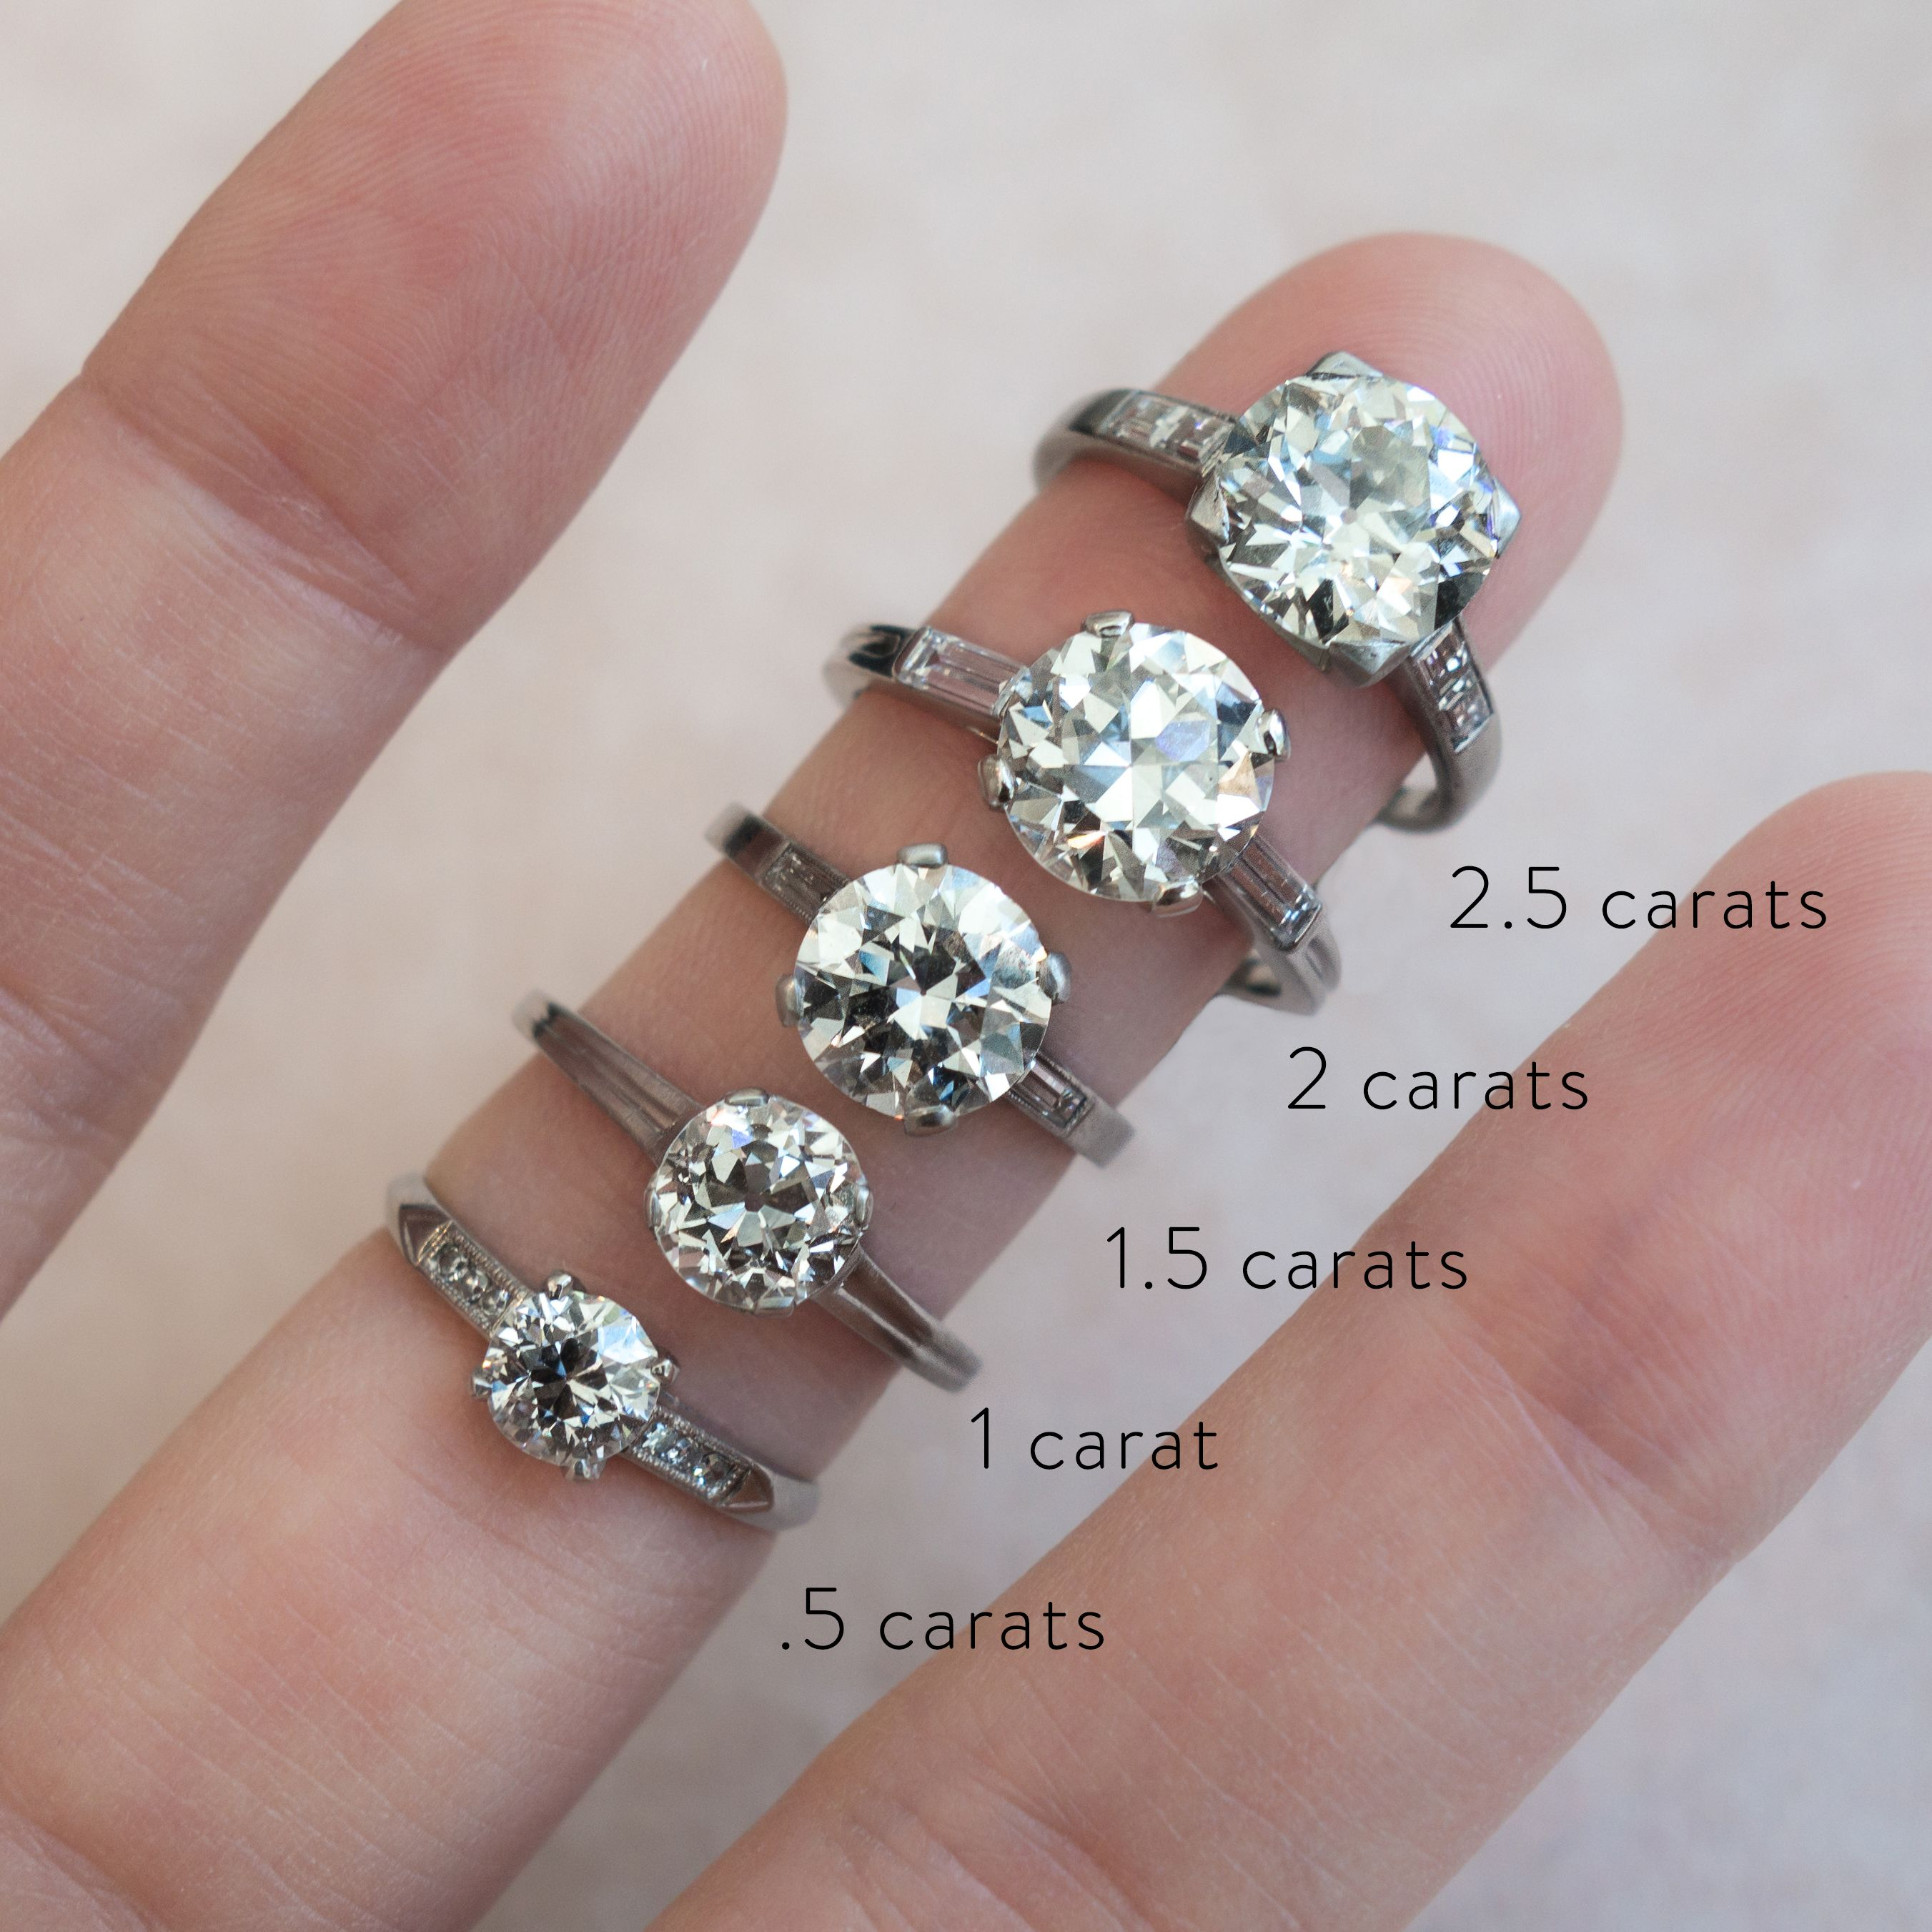 Actual Diamond Carat Size On A Hand Diamond Carat Size Diamond Sizes Diamond